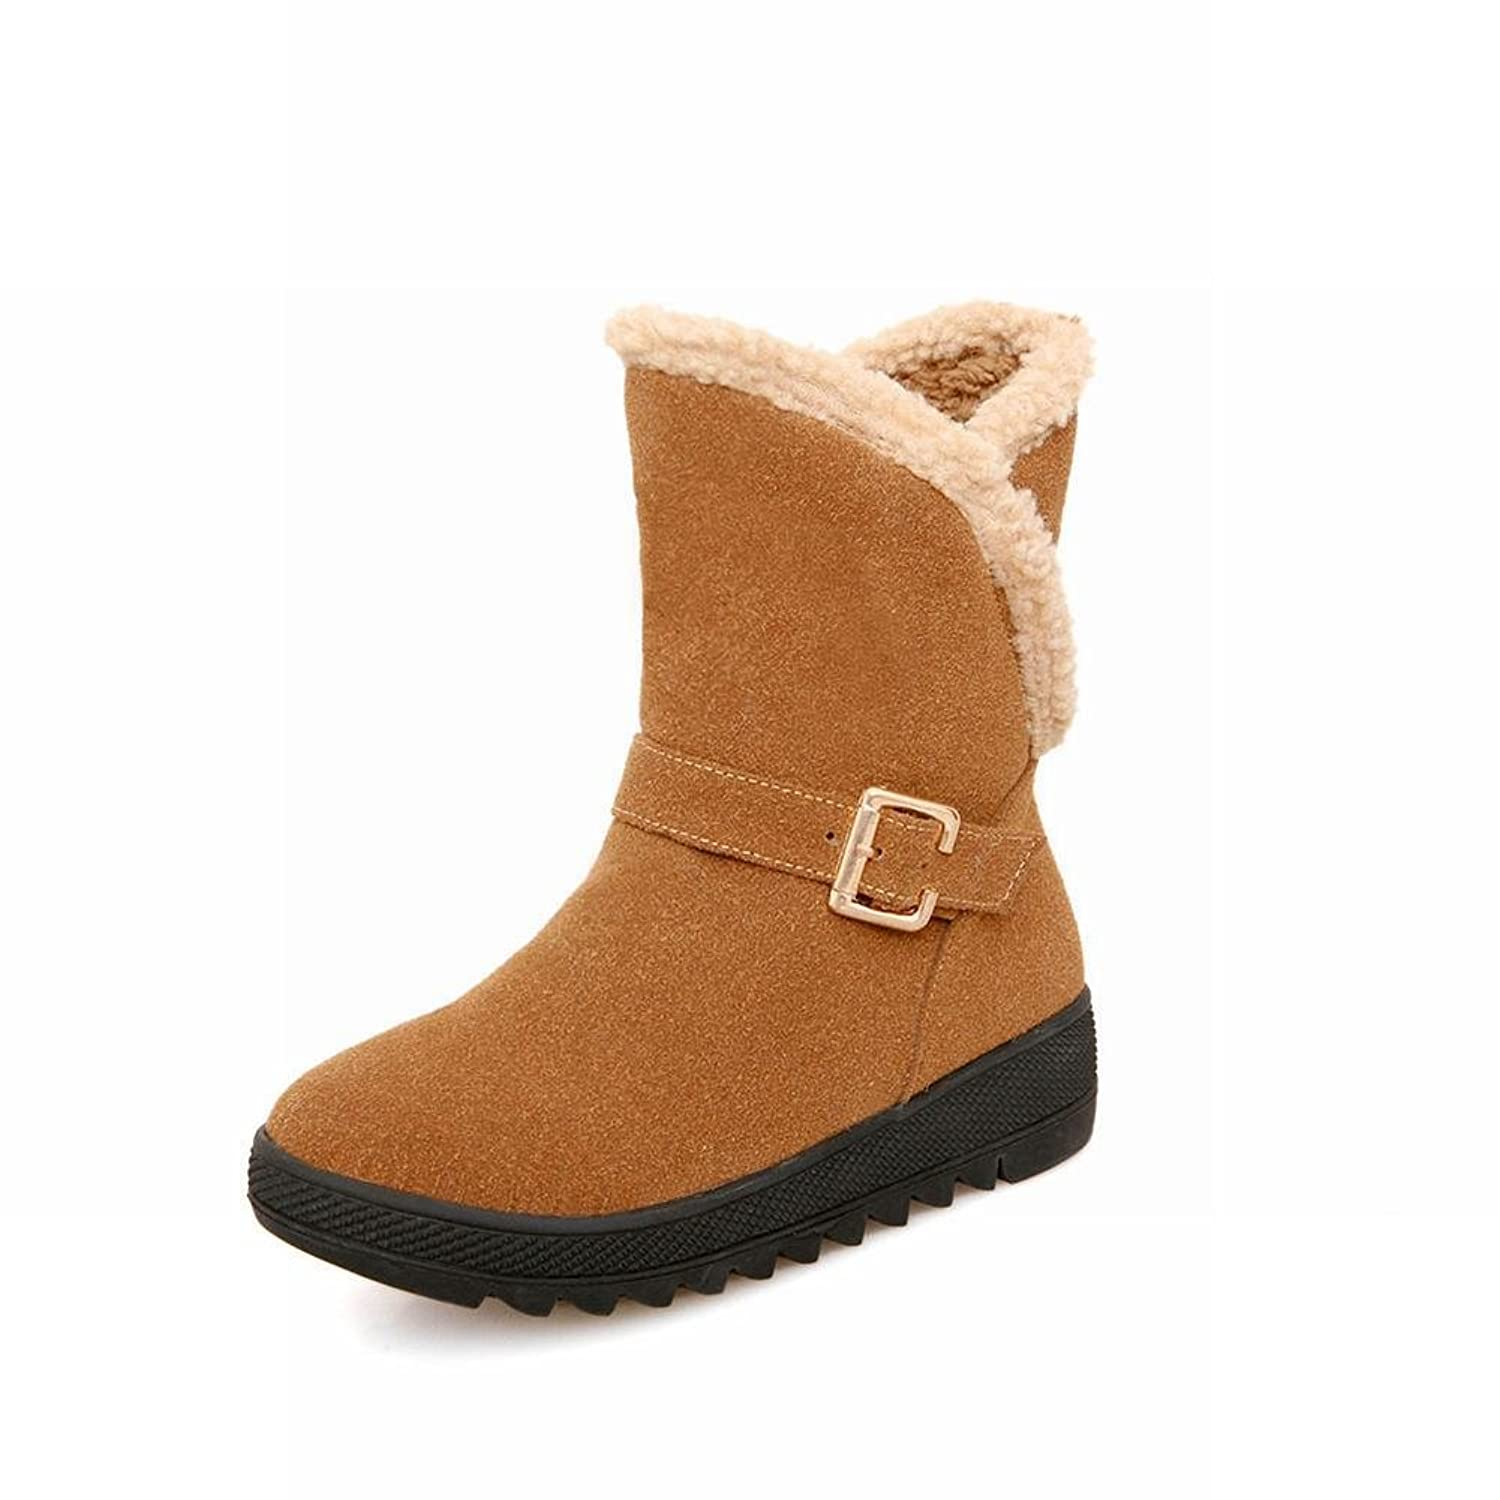 6e3ede52caa durable service Latasa Women s Fashion Suede Mid-calf Platform  Buckles-decorated Snow Boots. SOLO Eyewear ...